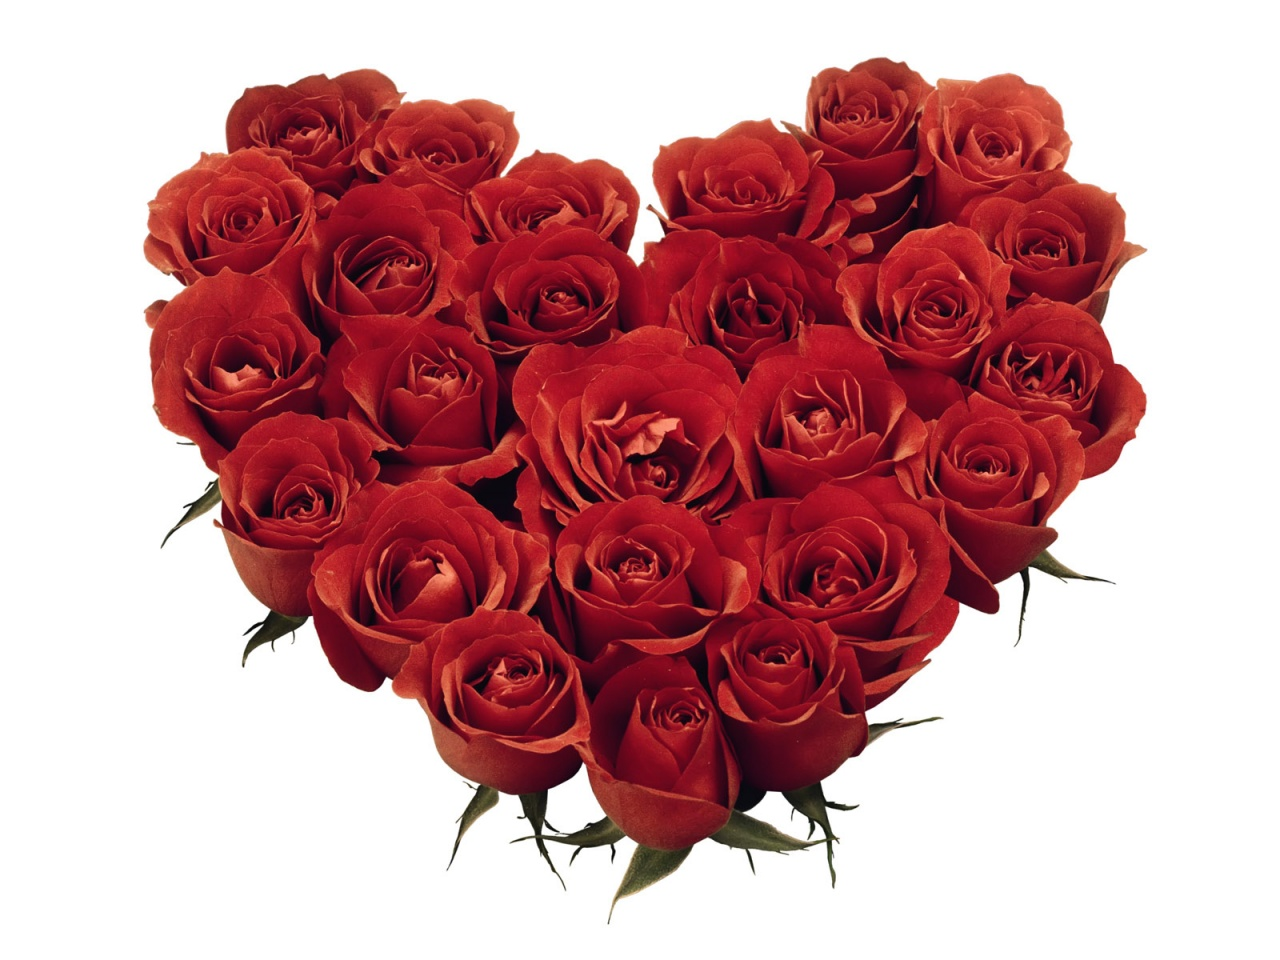 Cool wallpapers red rose heart wallpaper - Pics of roses and hearts ...